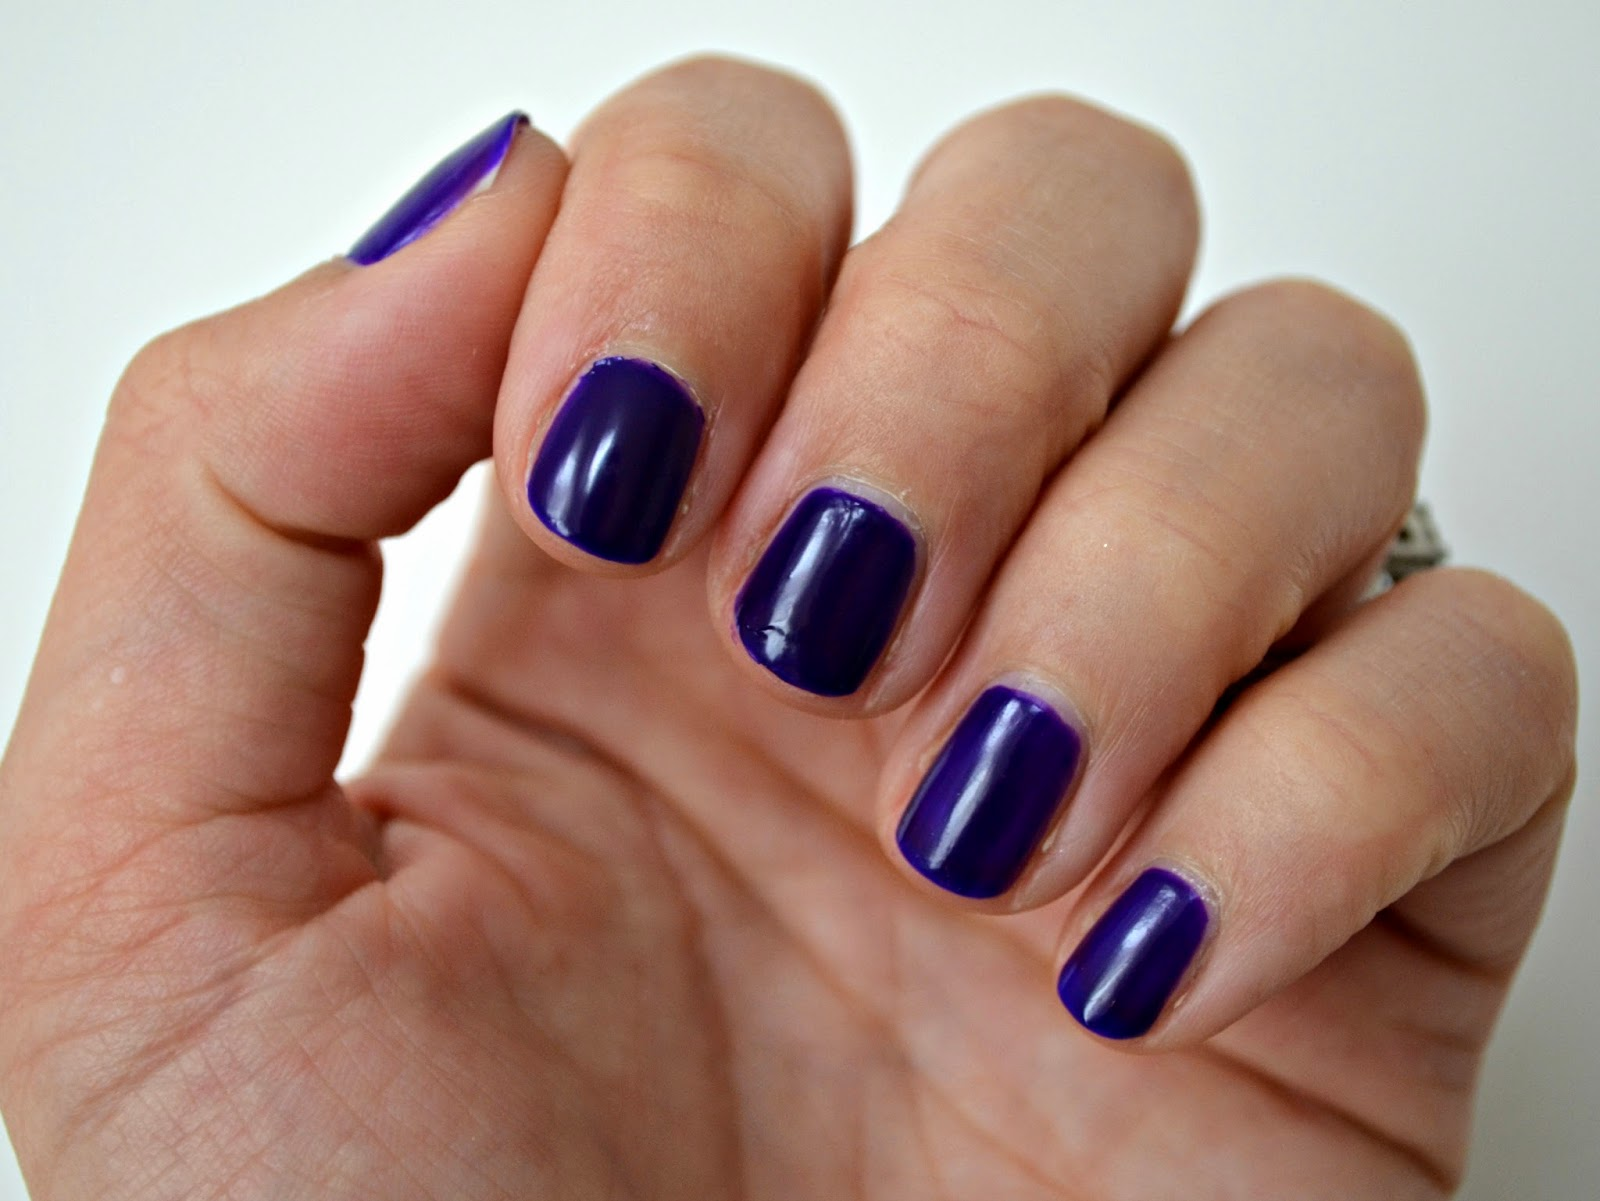 Orly Saturated purple nails